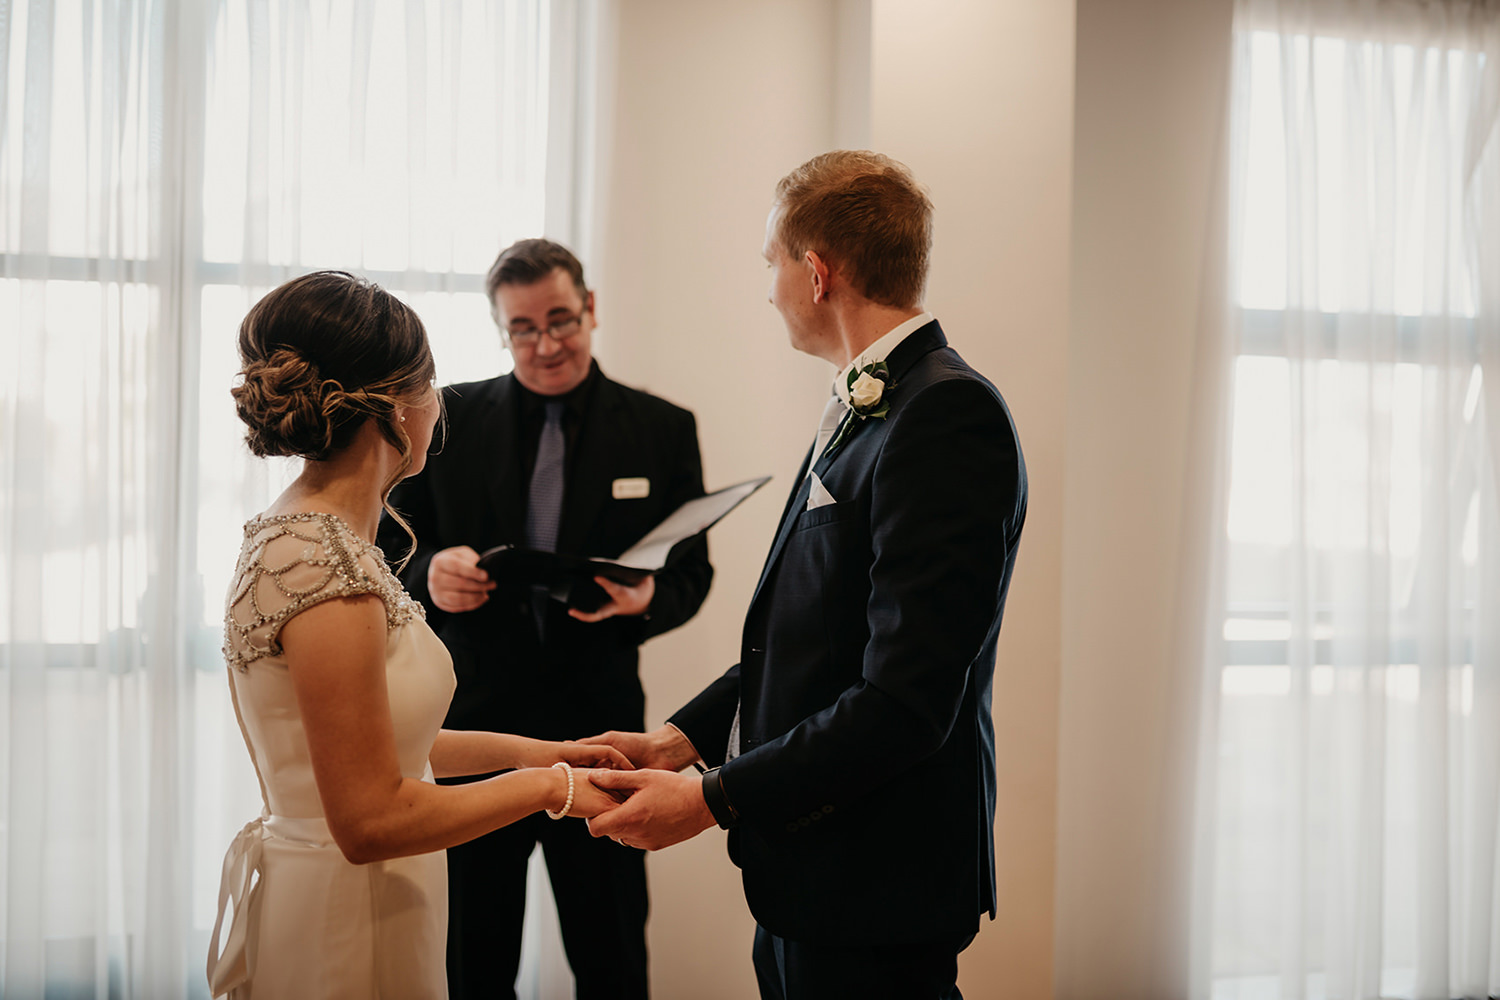 Wedding ceremony at Douglas Registry office